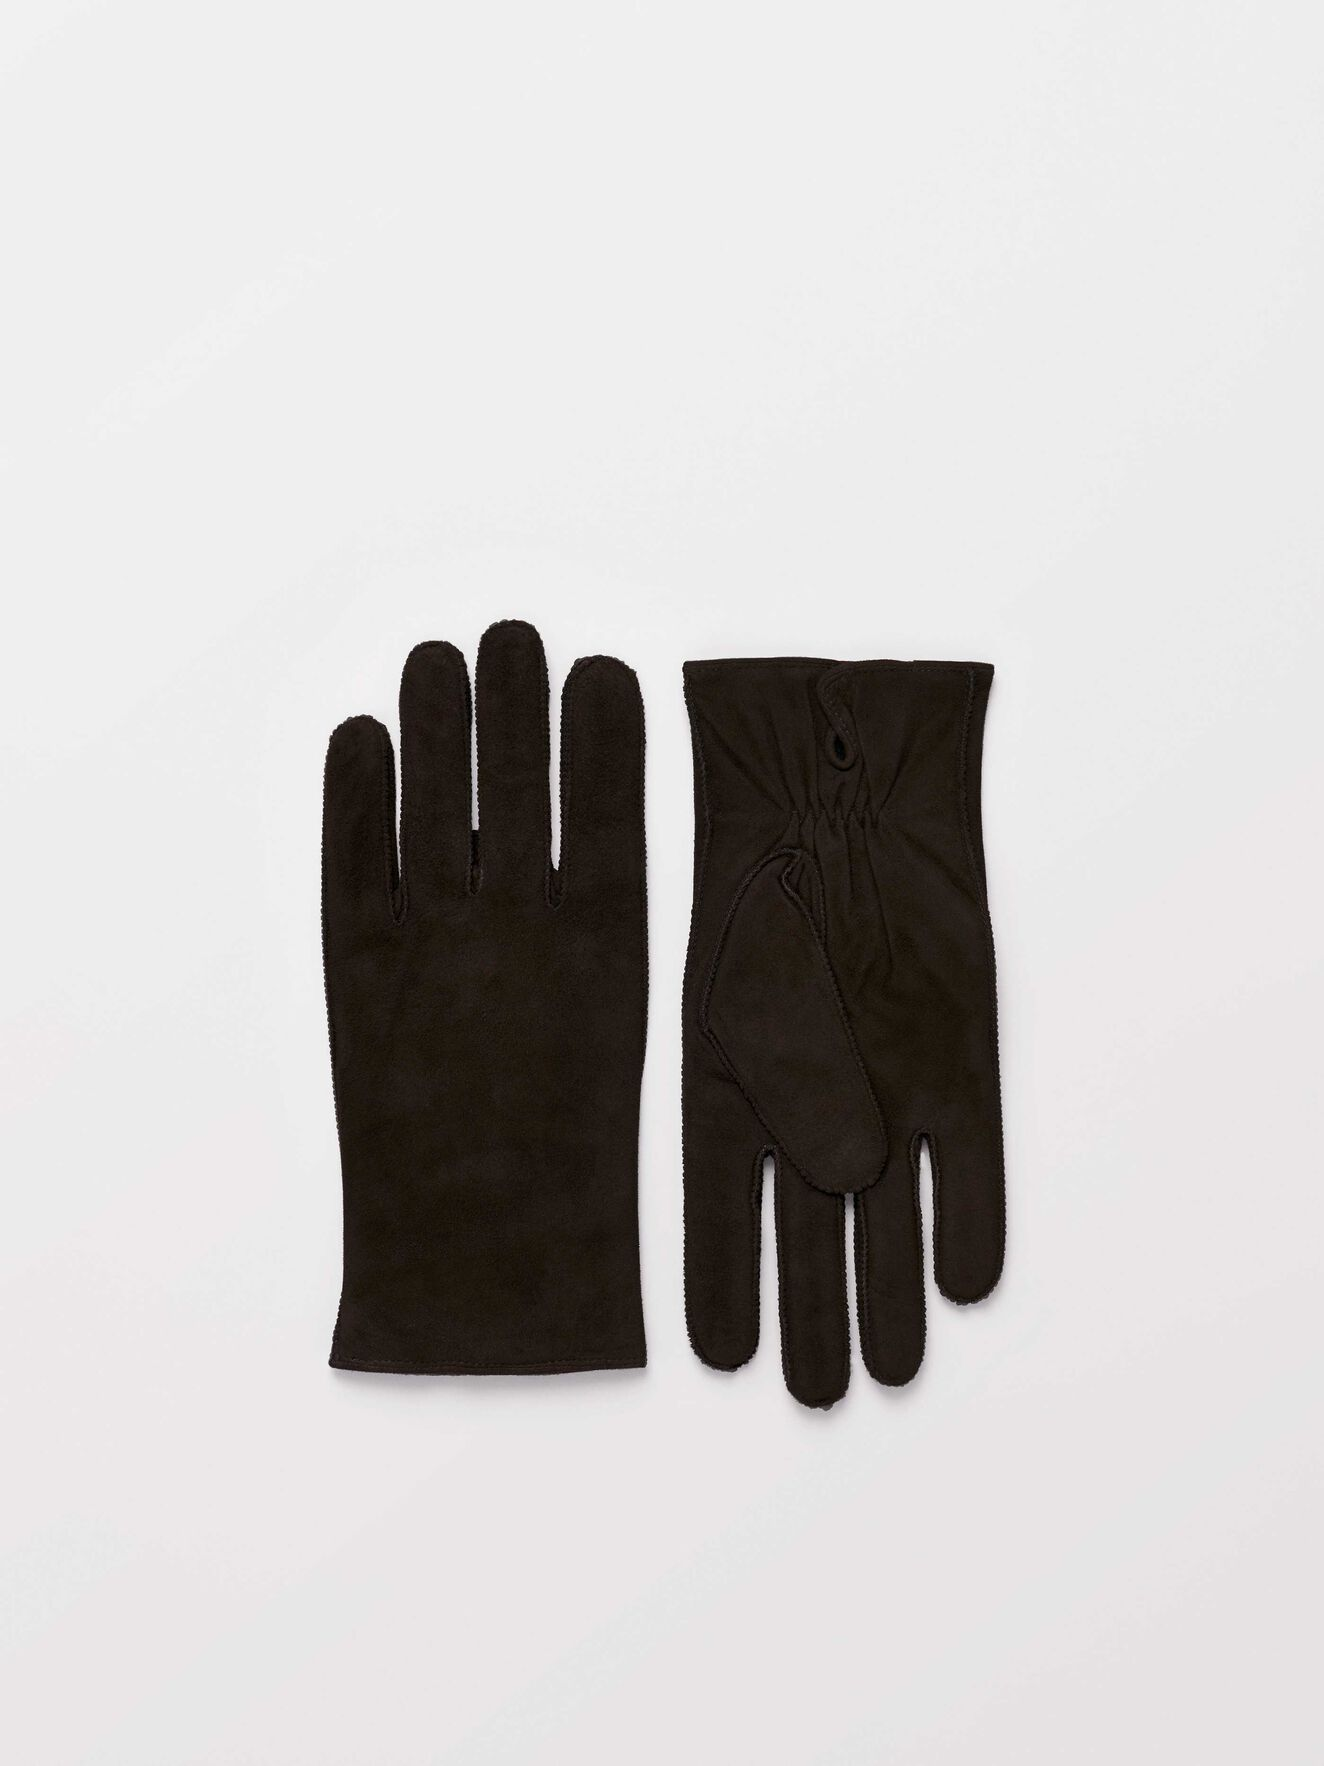 Gandaluss Gloves in Dark Brown from Tiger of Sweden